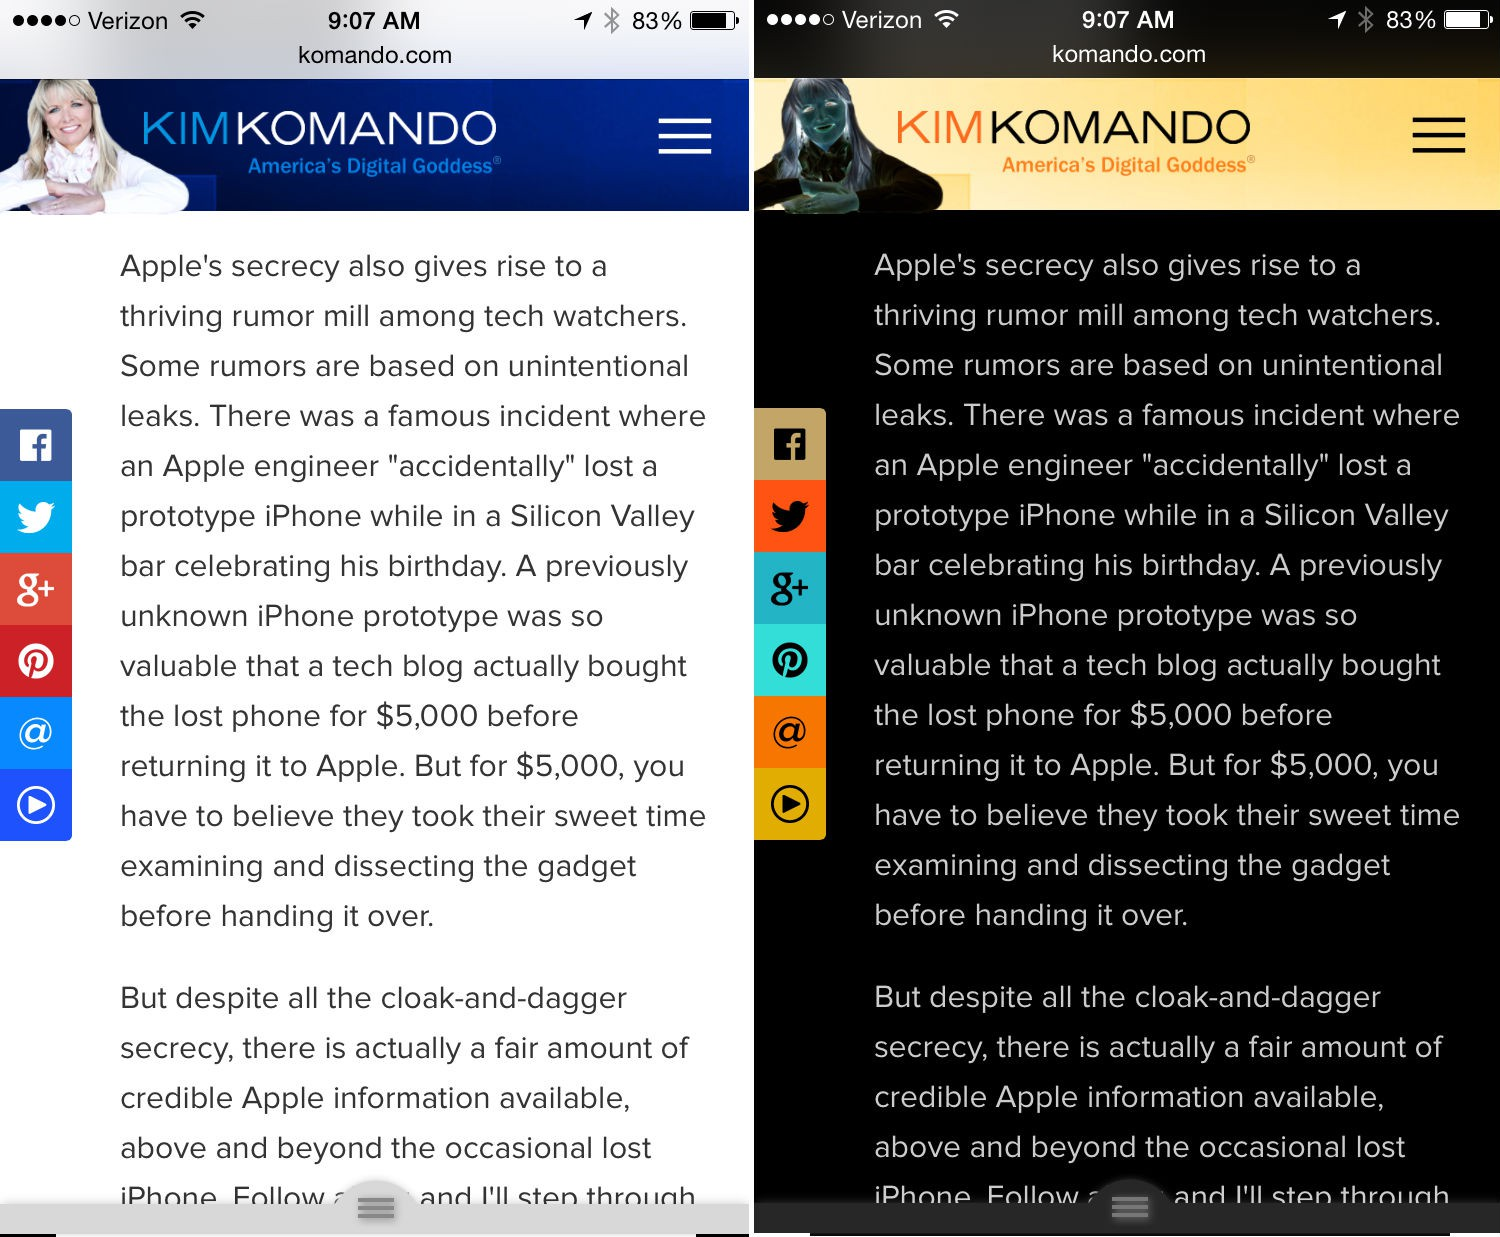 Komando.com on iPhone with inveted screen colors